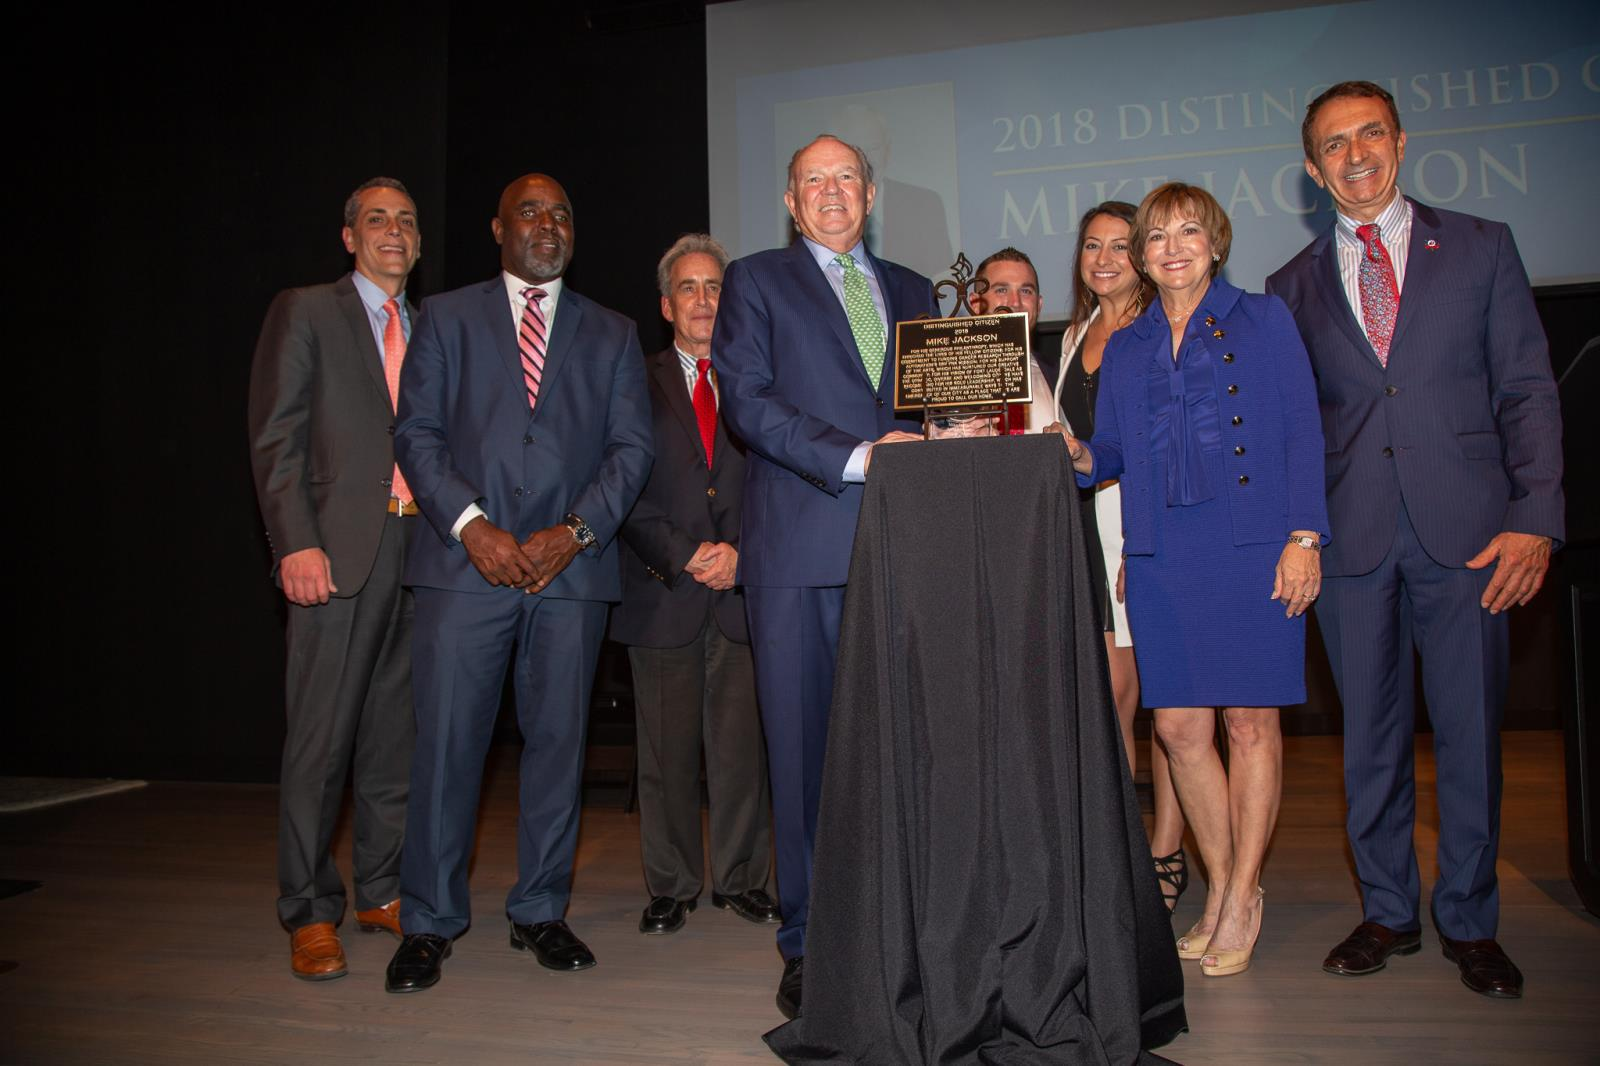 Fort Lauderdale City Commission and 2018 Distinguished Citizen of the Year Mike Jackson